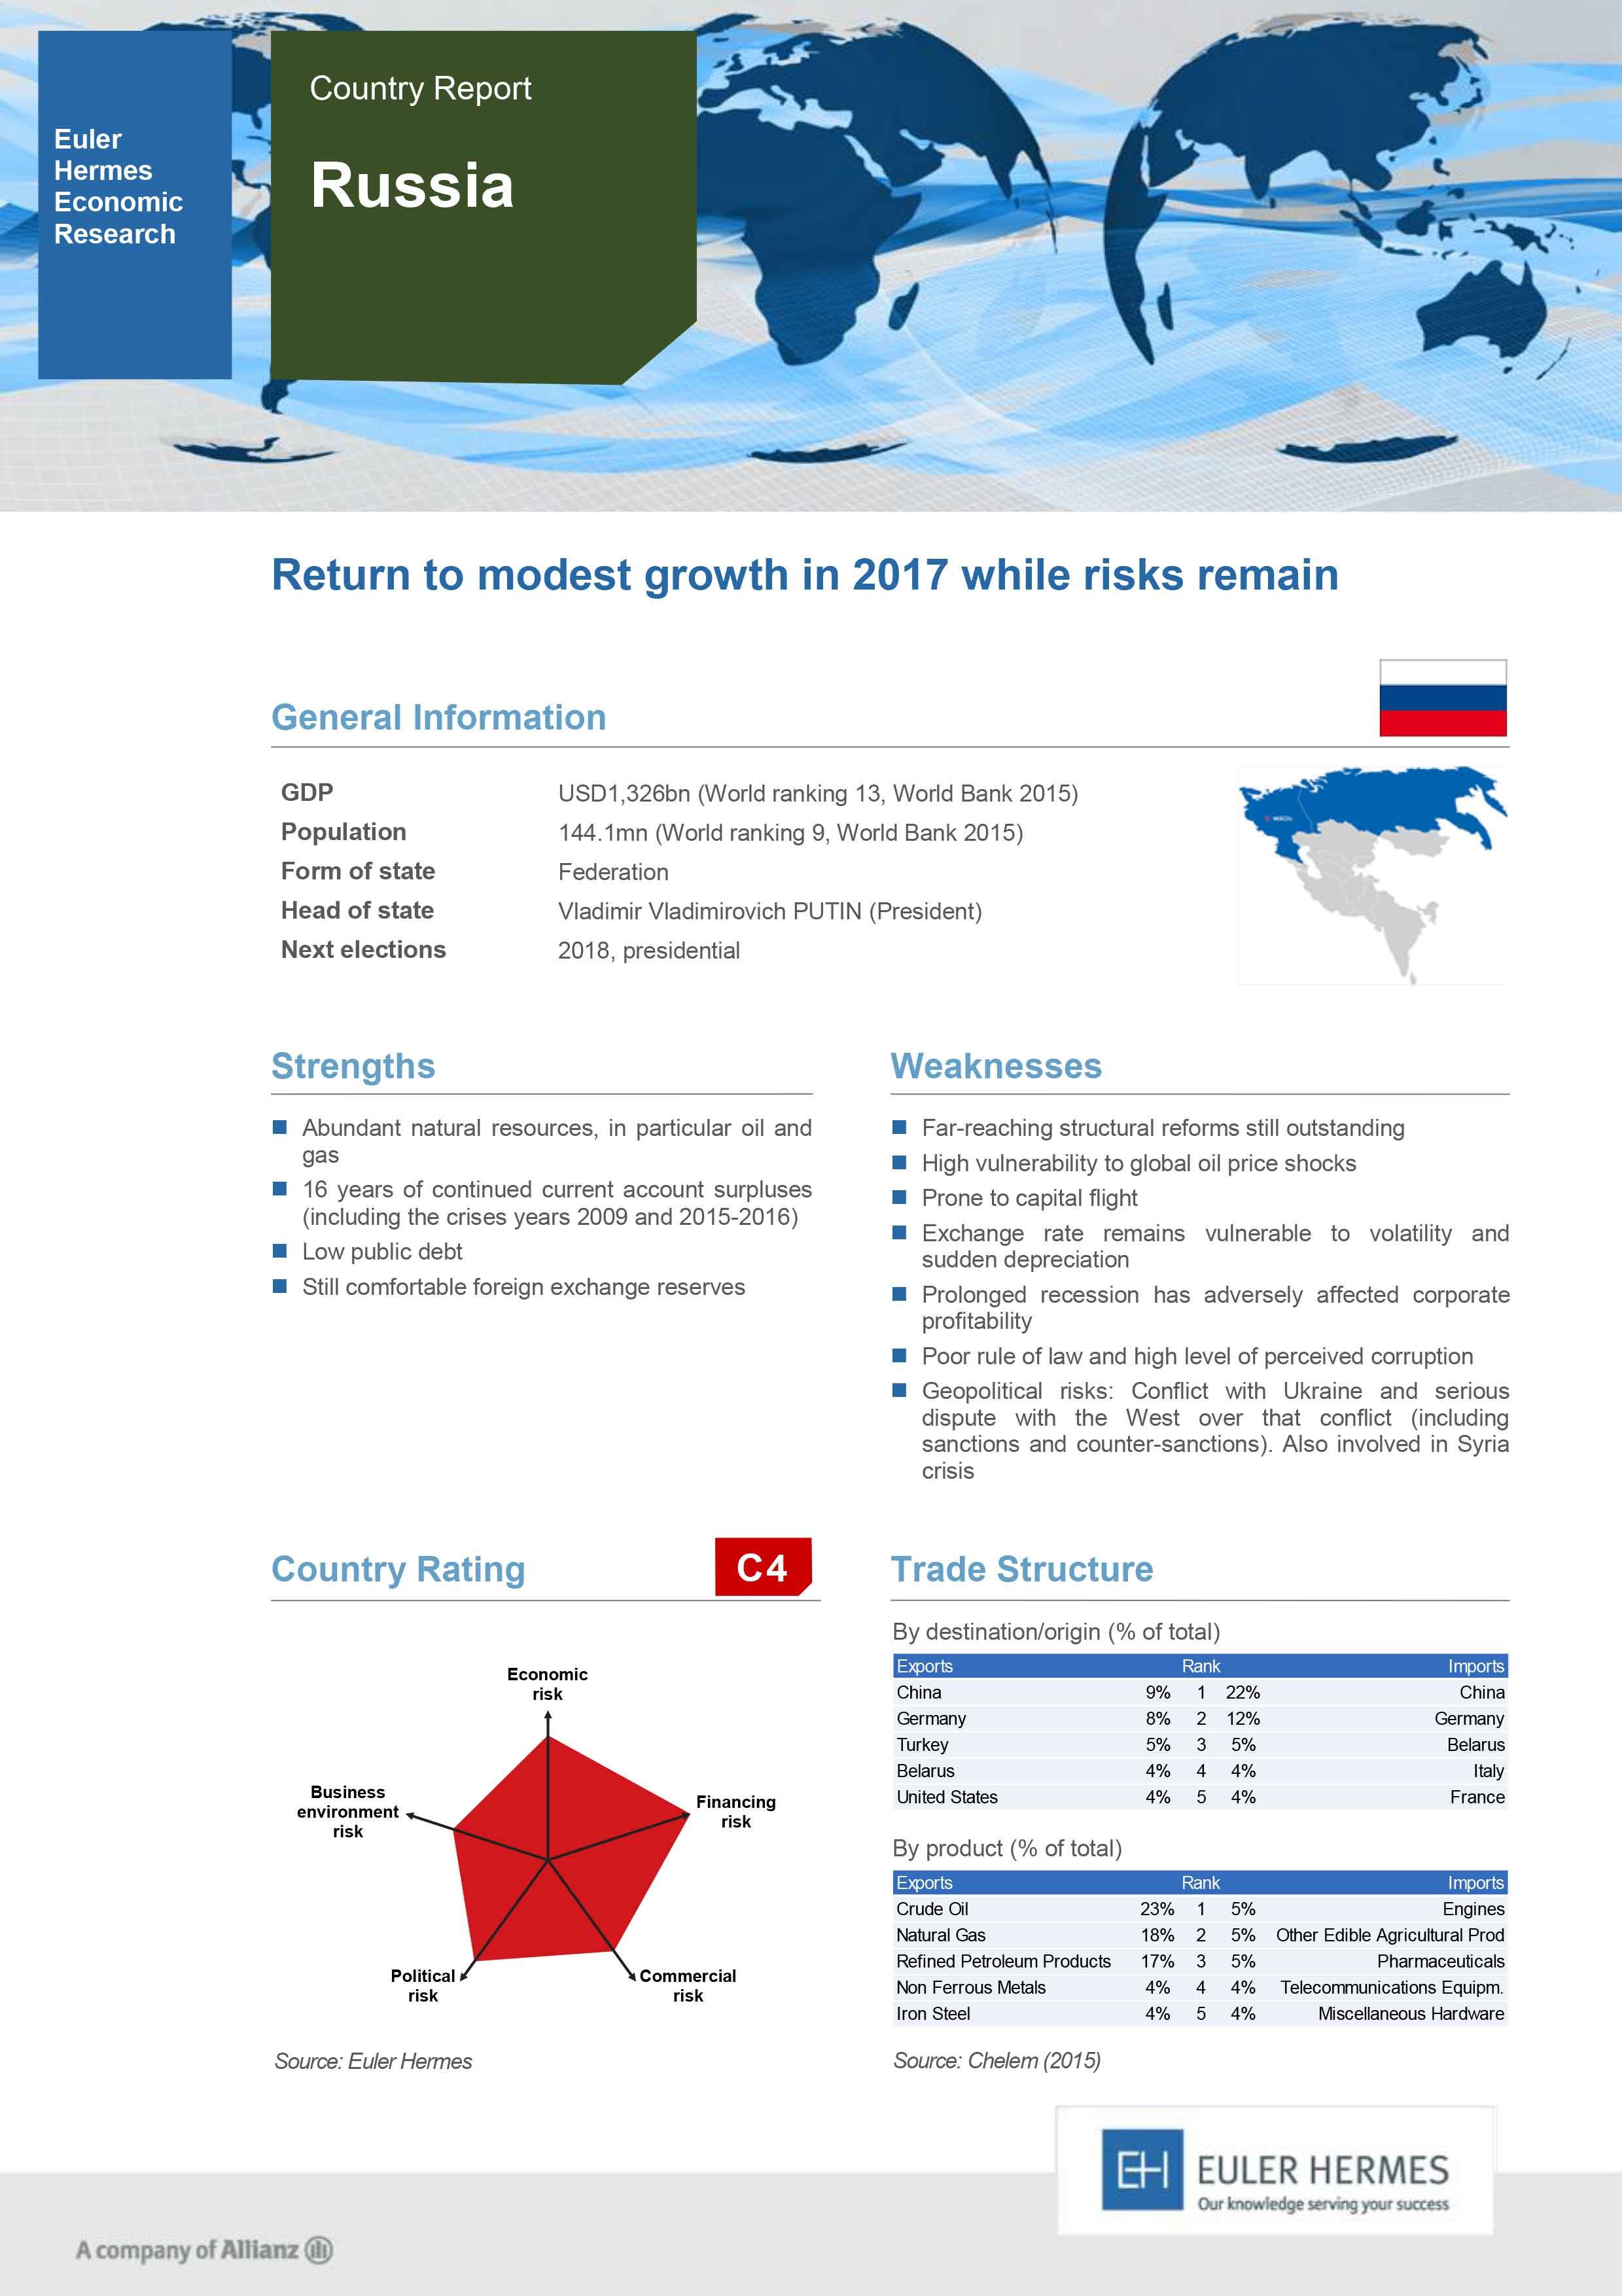 Country Report - Russia